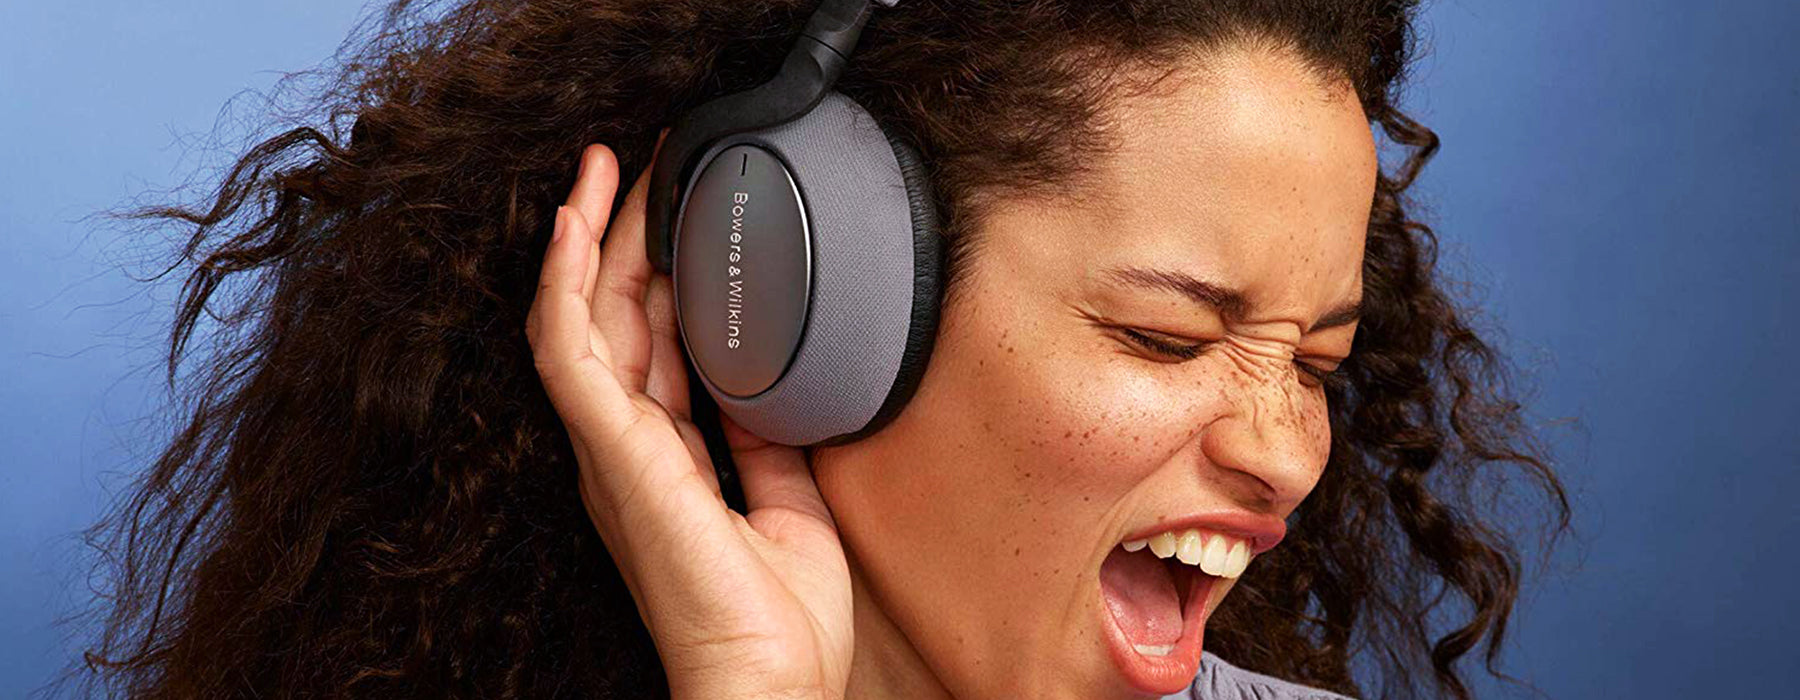 Bowers & Wilkins Headphones and Audio Gear